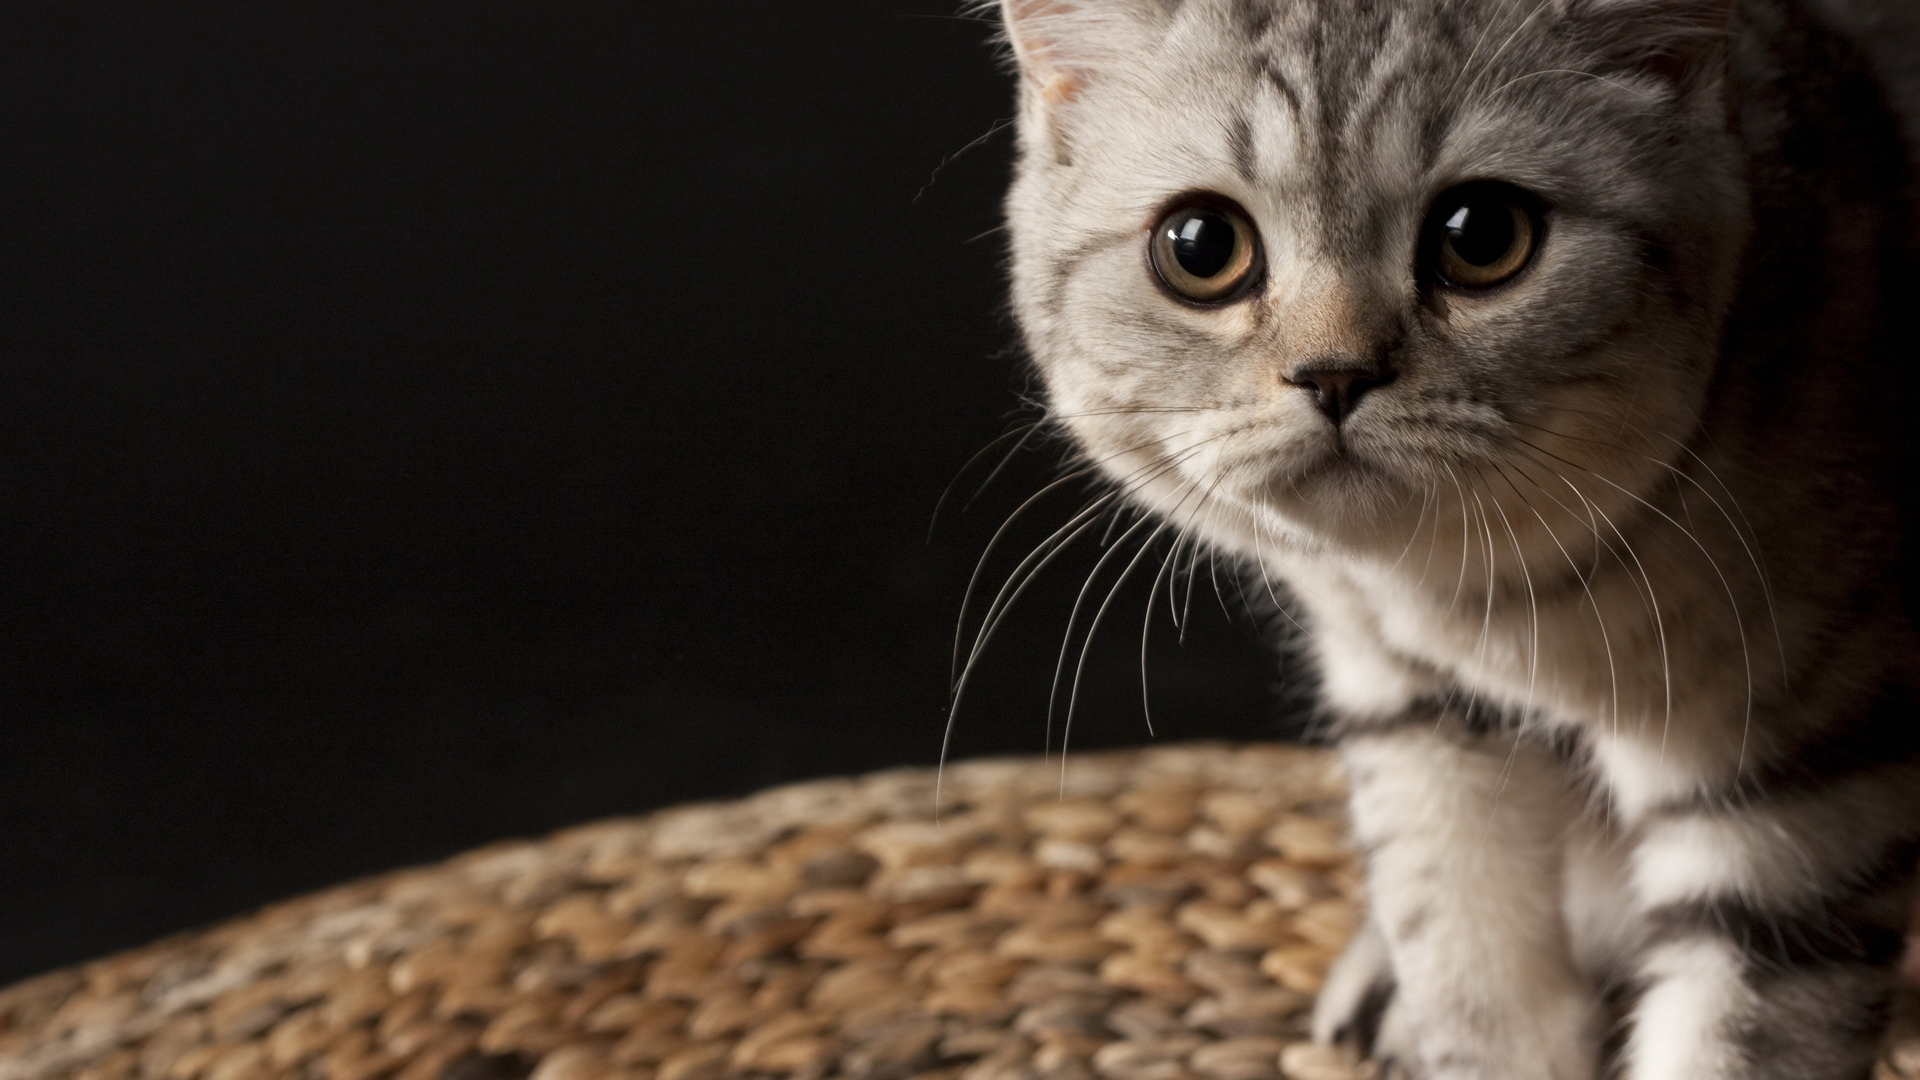 Silver-Tabby-CUTE-CATS-Pinterest-Tabby-cats-Cat-and-wallpaper-wpc9009164